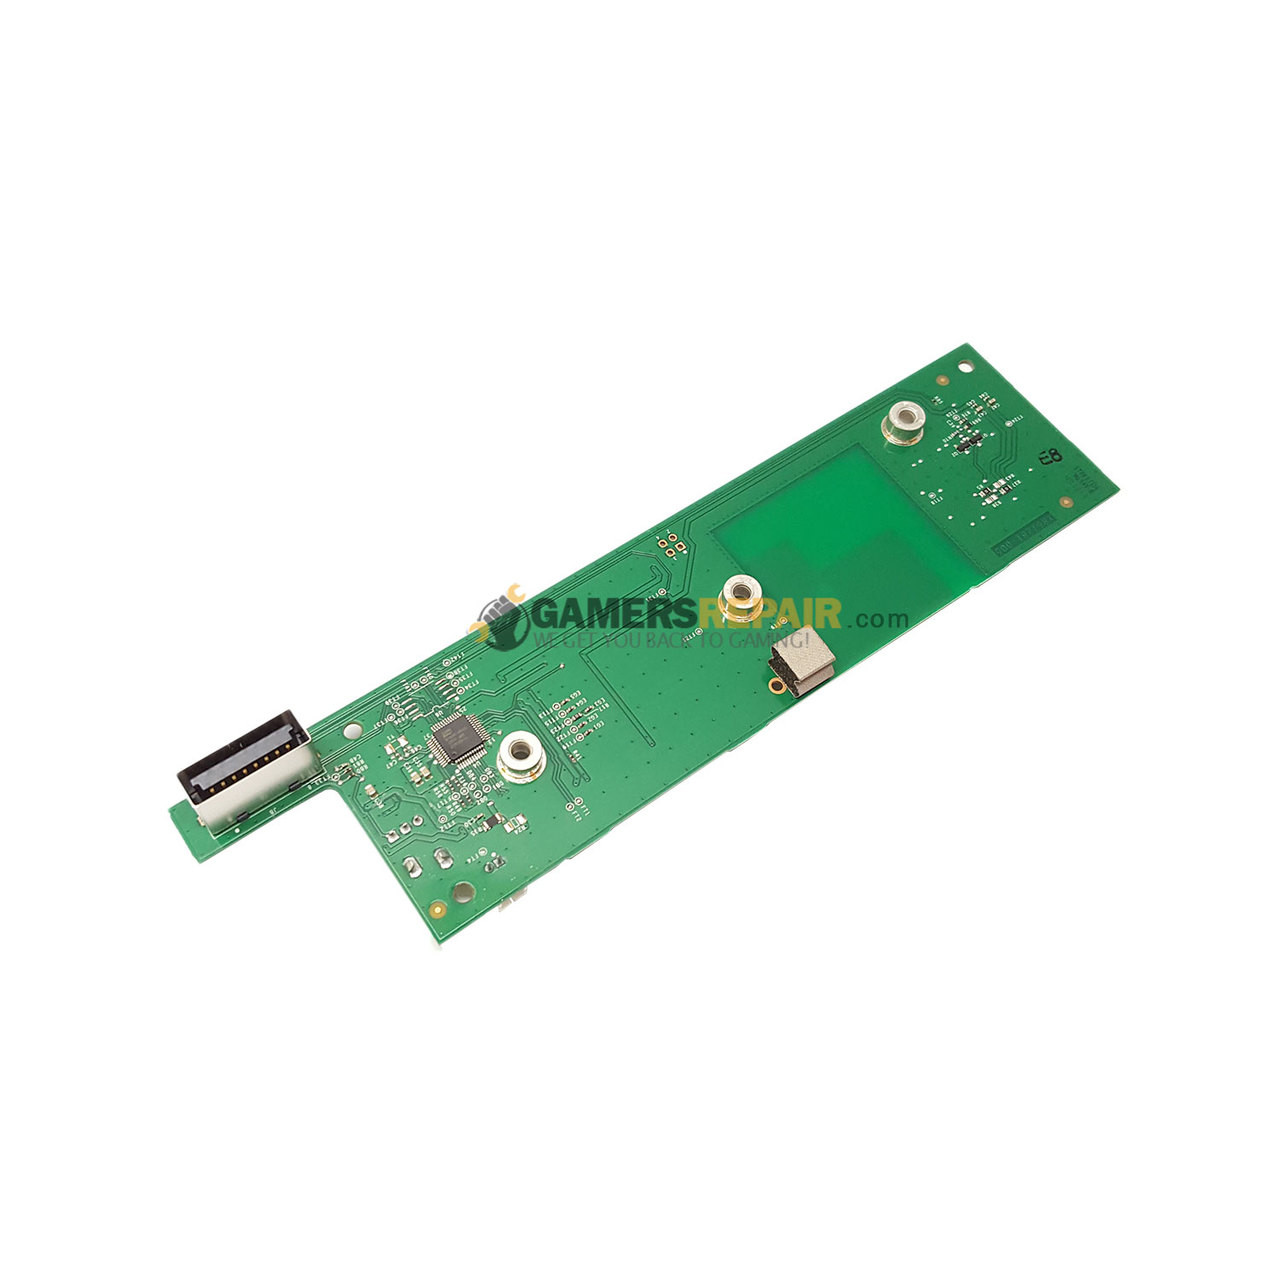 Original Microsoft OEM Xbox ONE Power & Eject Faceplate Connector board